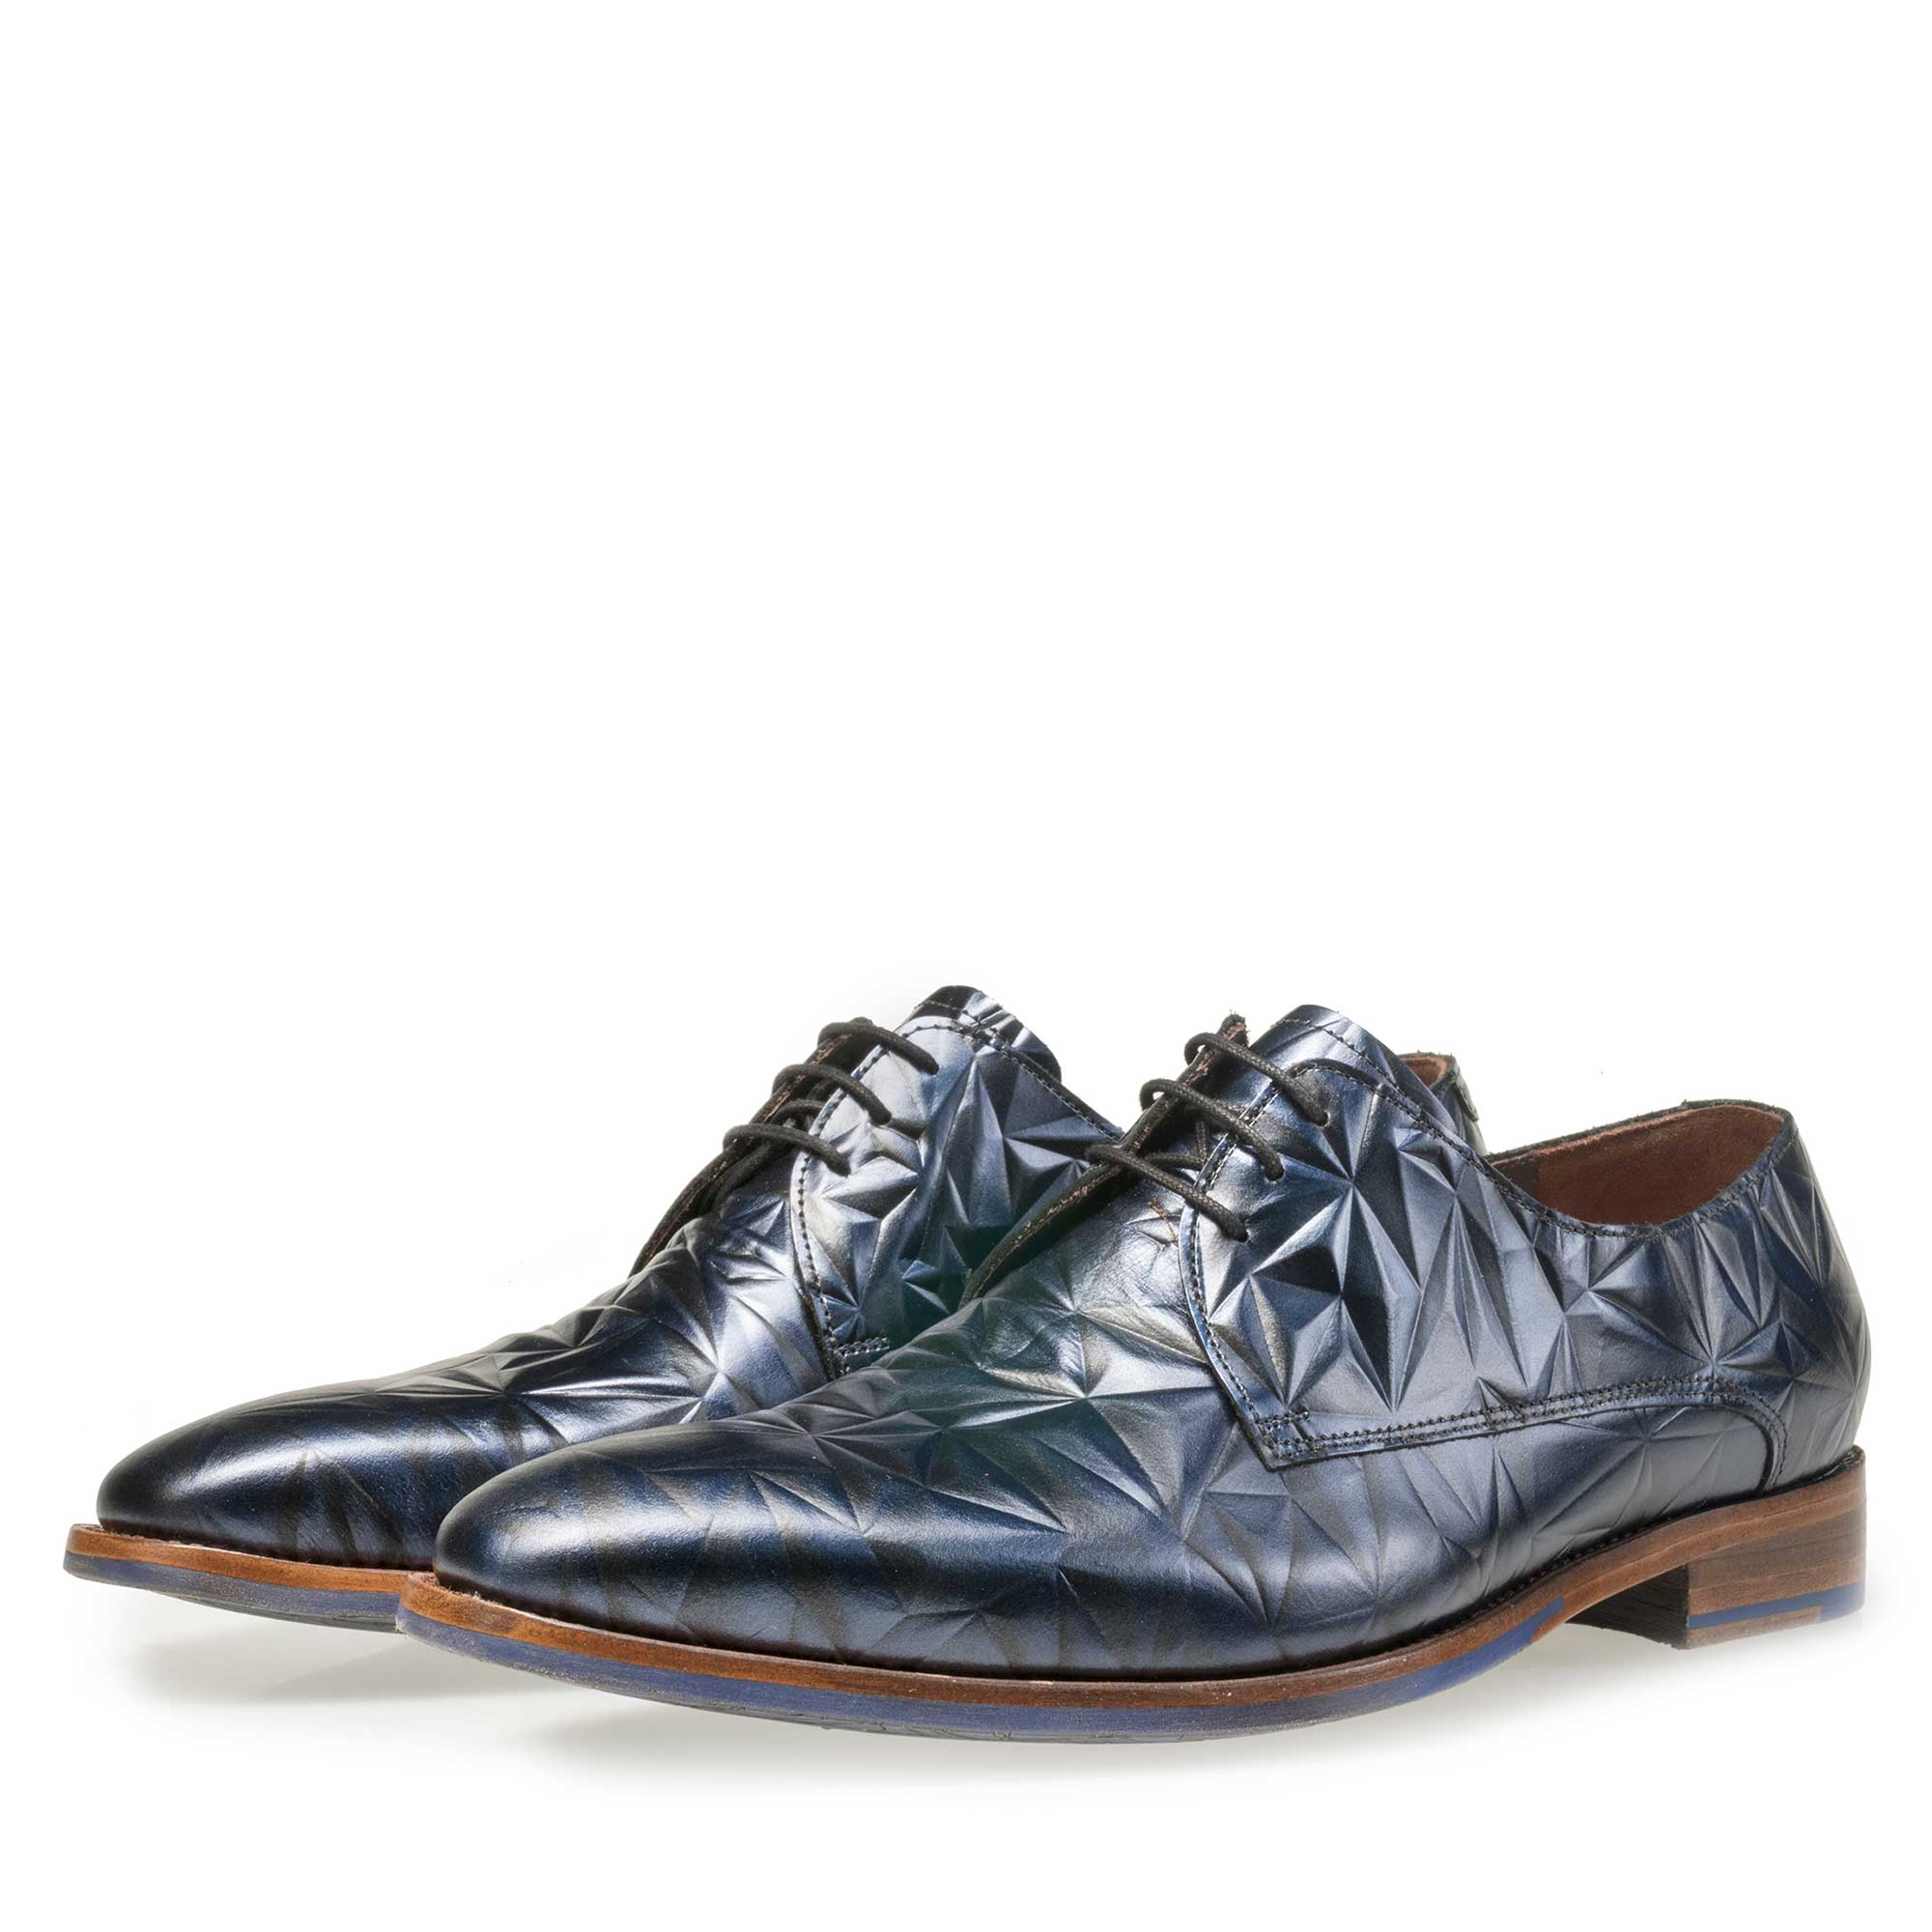 14237/00 - Floris van Bommel men's blue leather lace shoe finished with a black 3D print